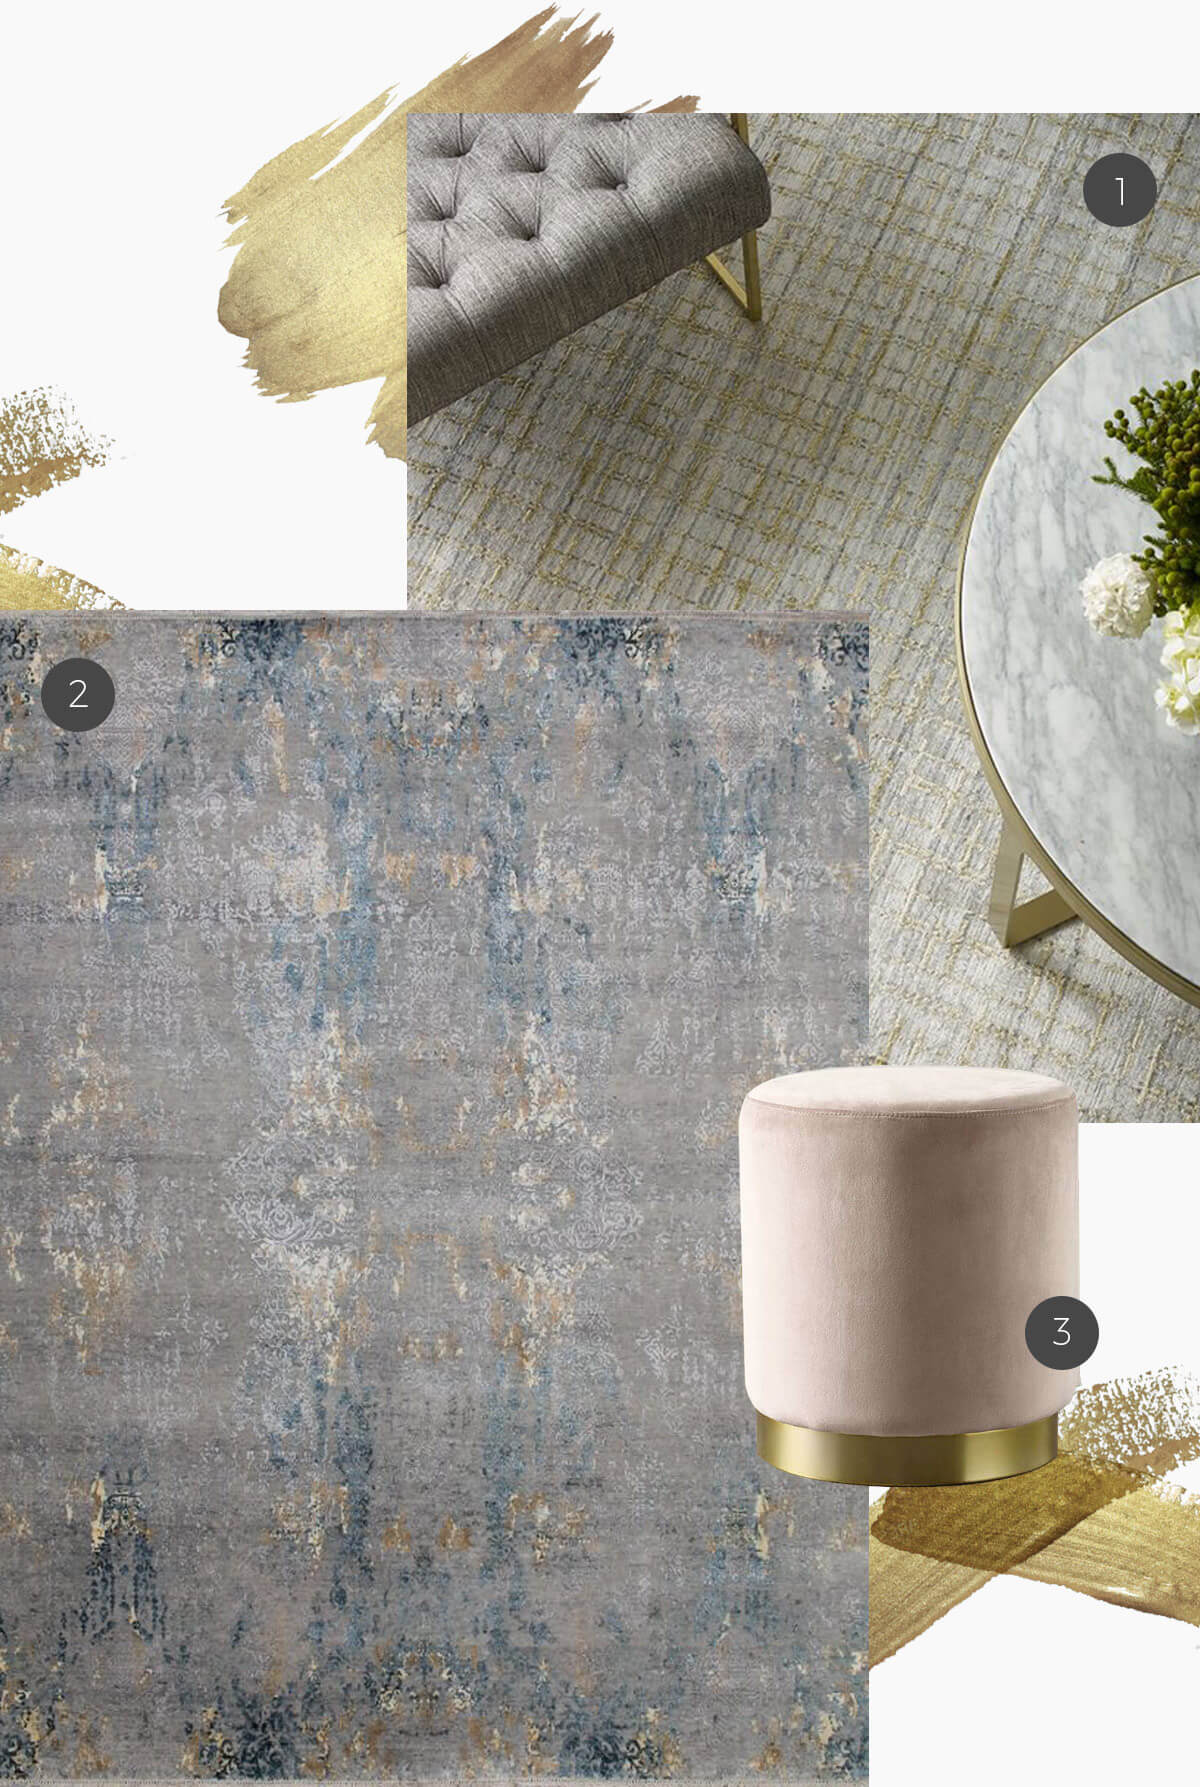 gold accents on rugs and furniture